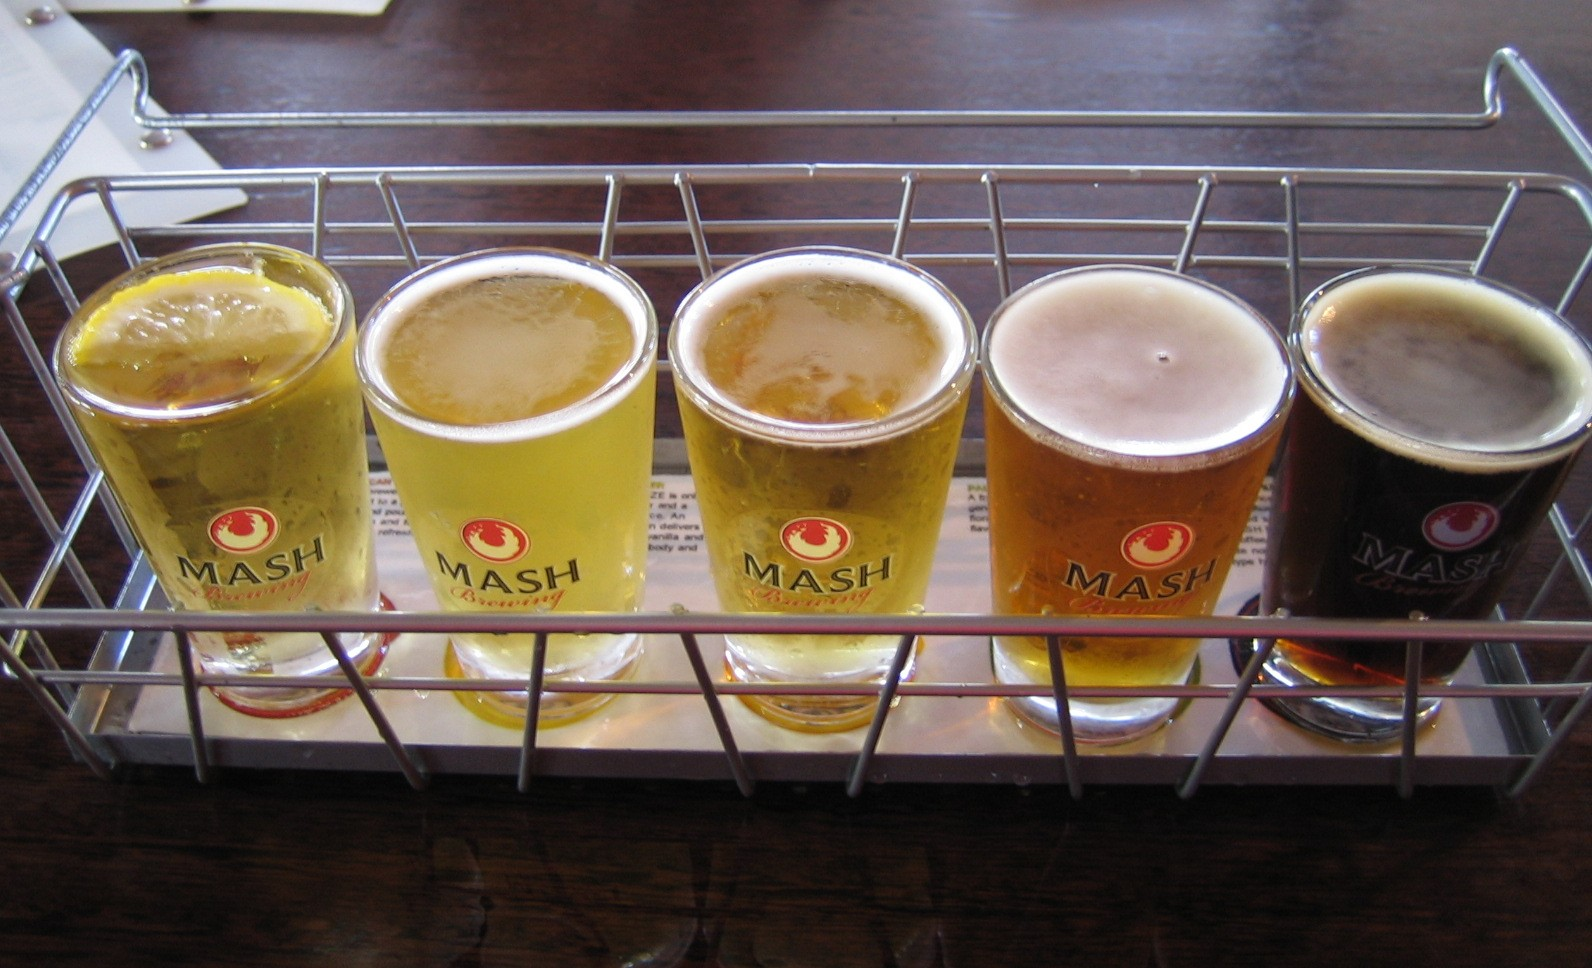 The full range of beers usually available